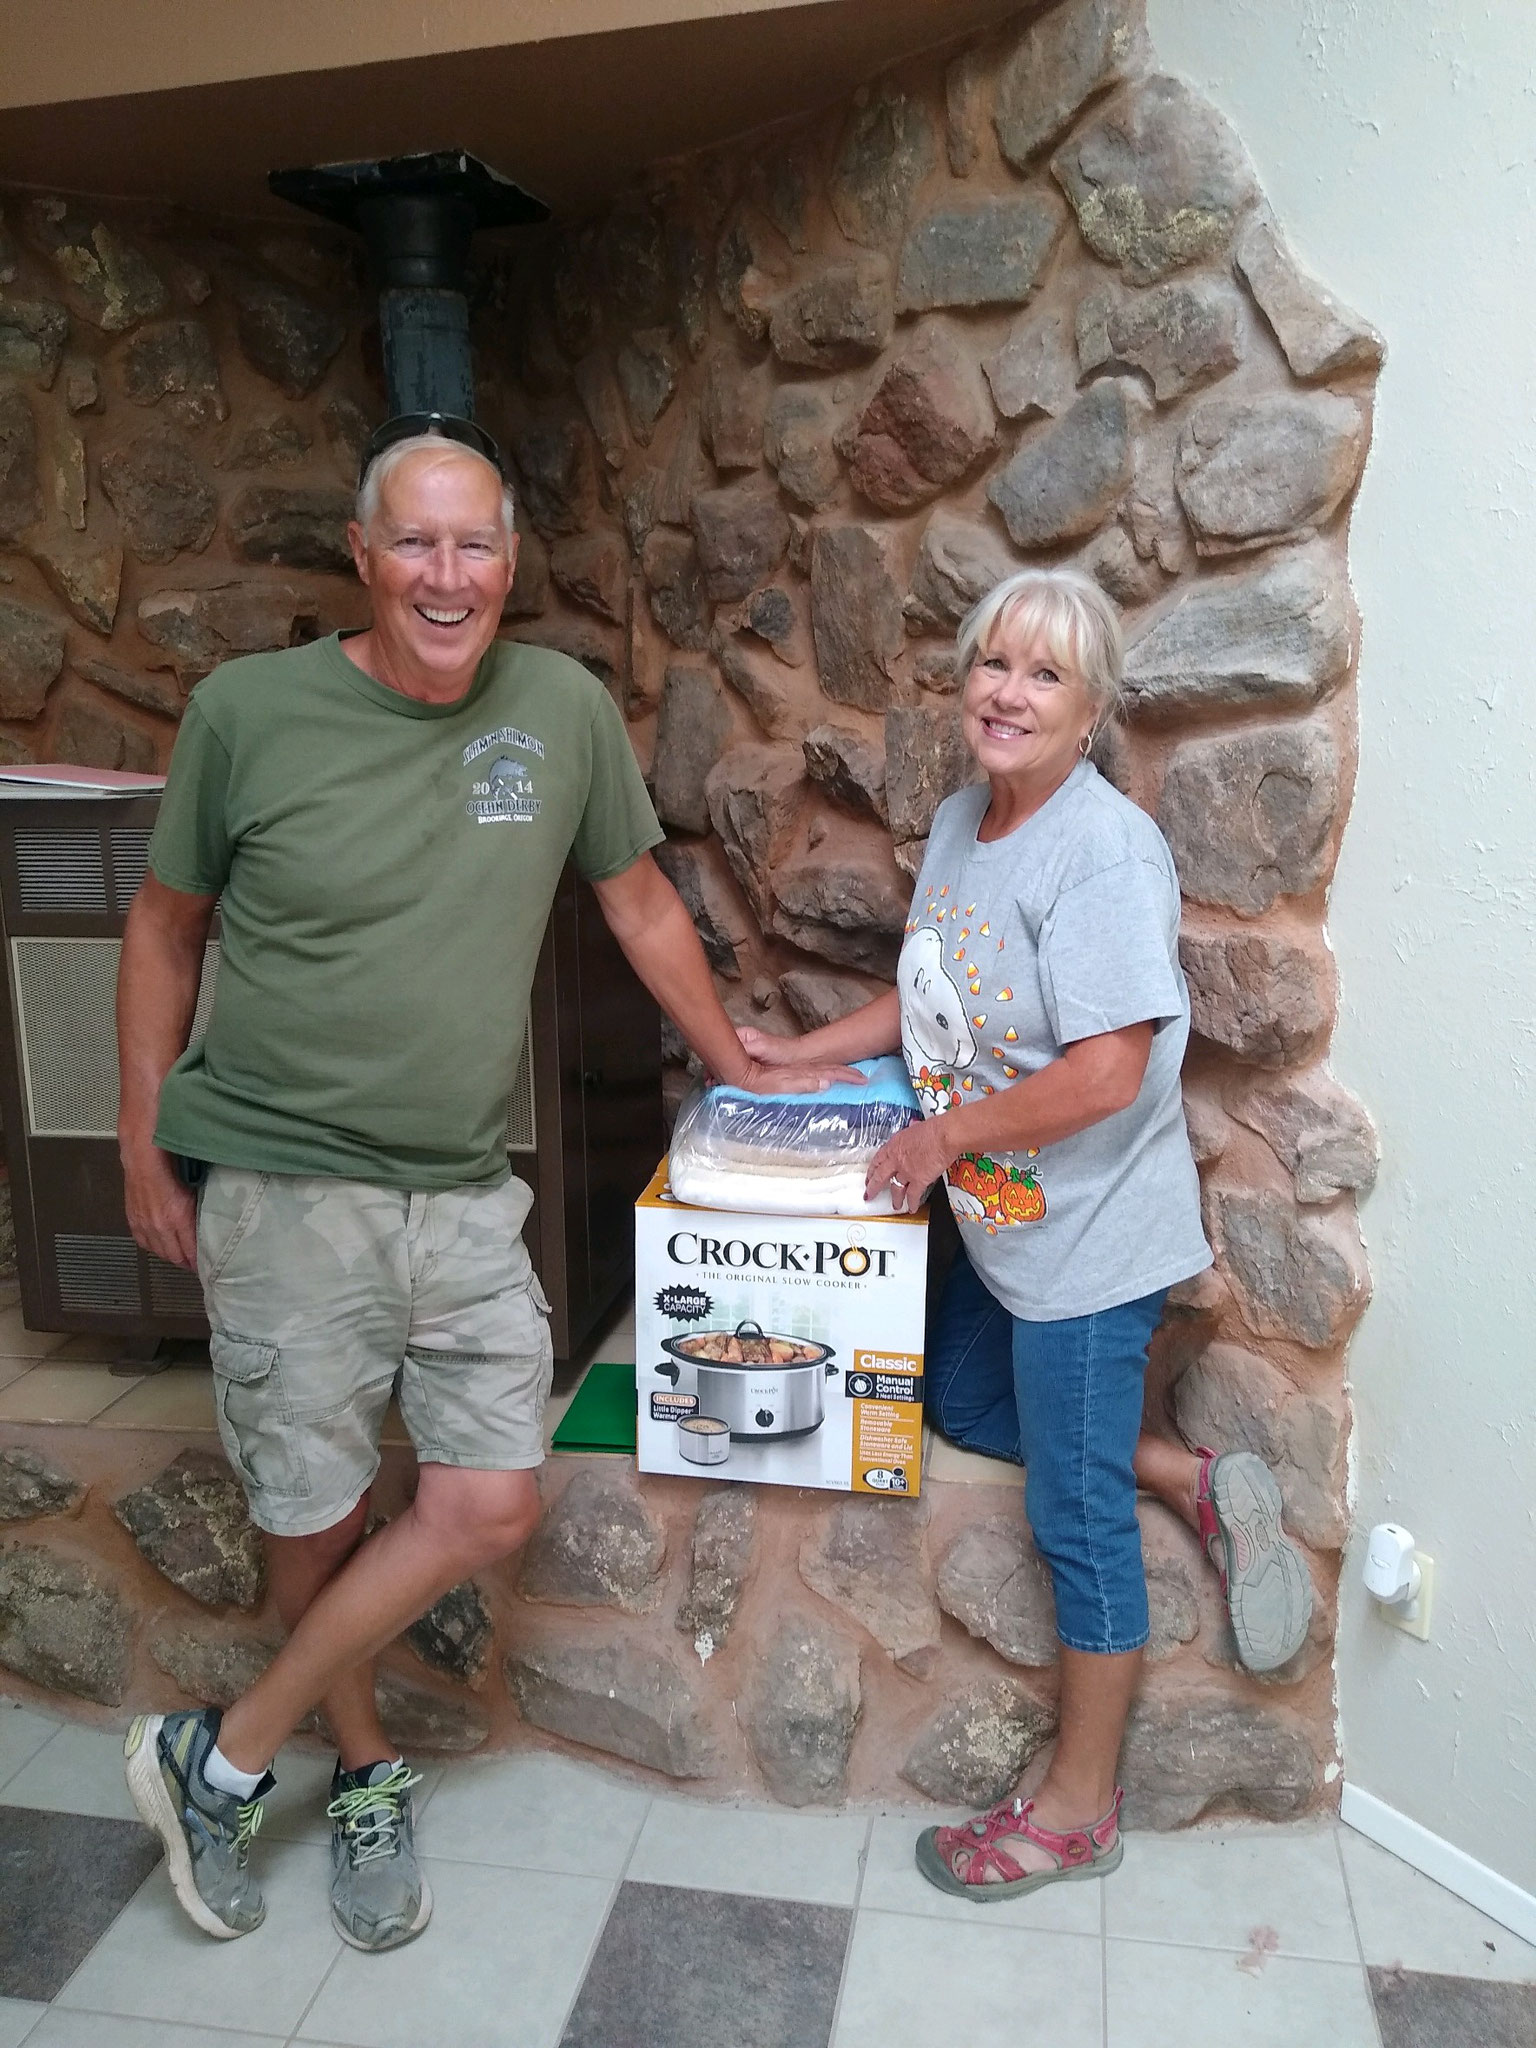 David and Judy Cass donated new Crock-pots, a griddle, and towels. They also landscaped (at their own expense) in front of Ward Cottage.